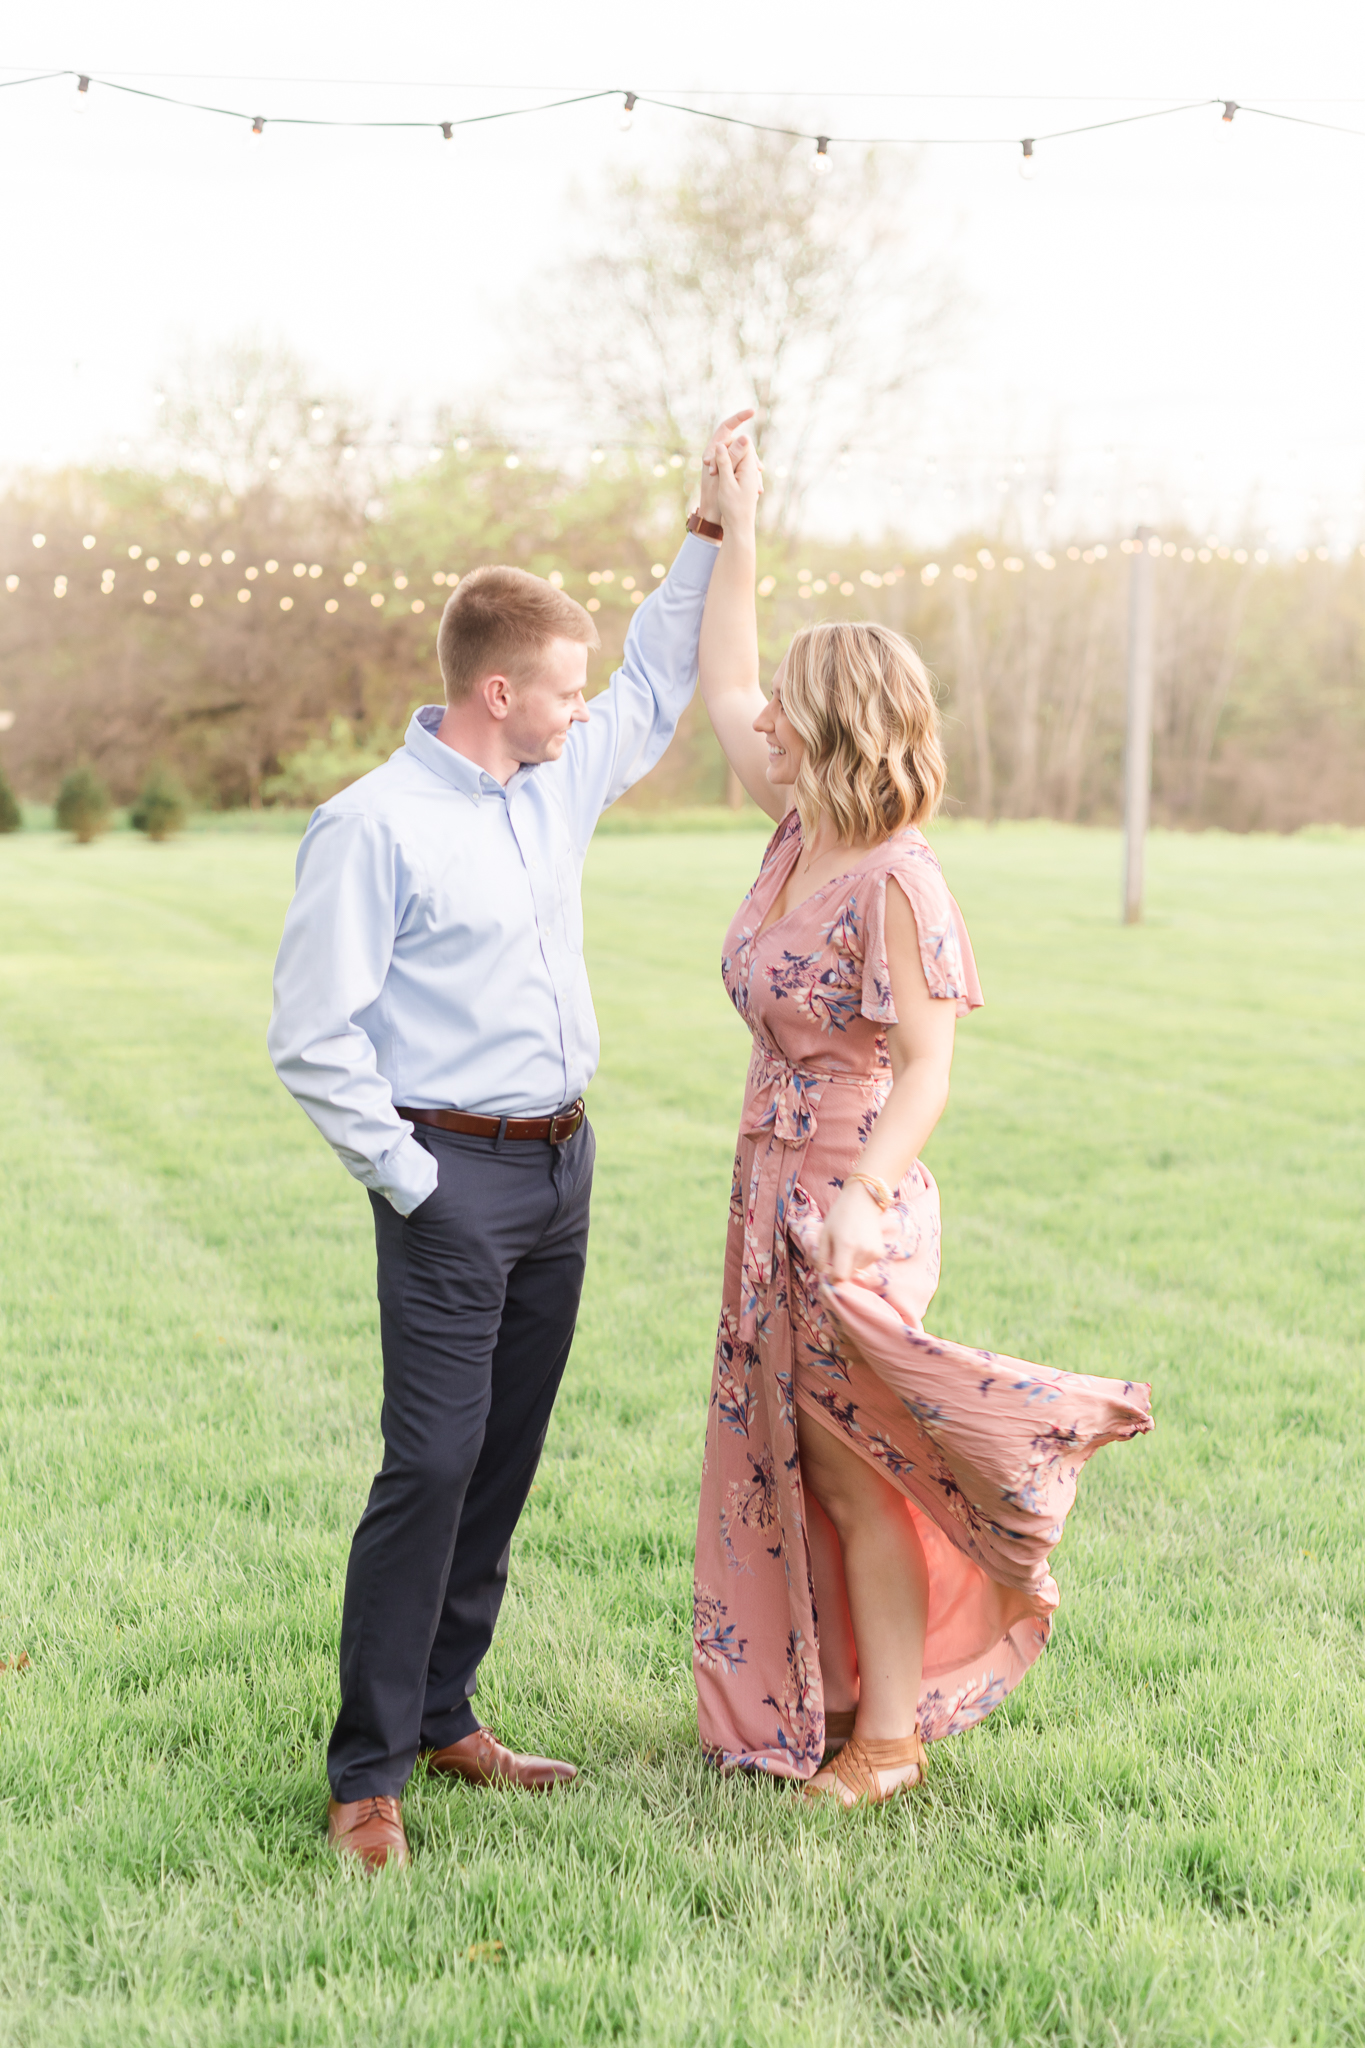 Richie Woods Nature Preserve and Mustard Seed Gardens Engagement Session Wedding Photos-38.jpg